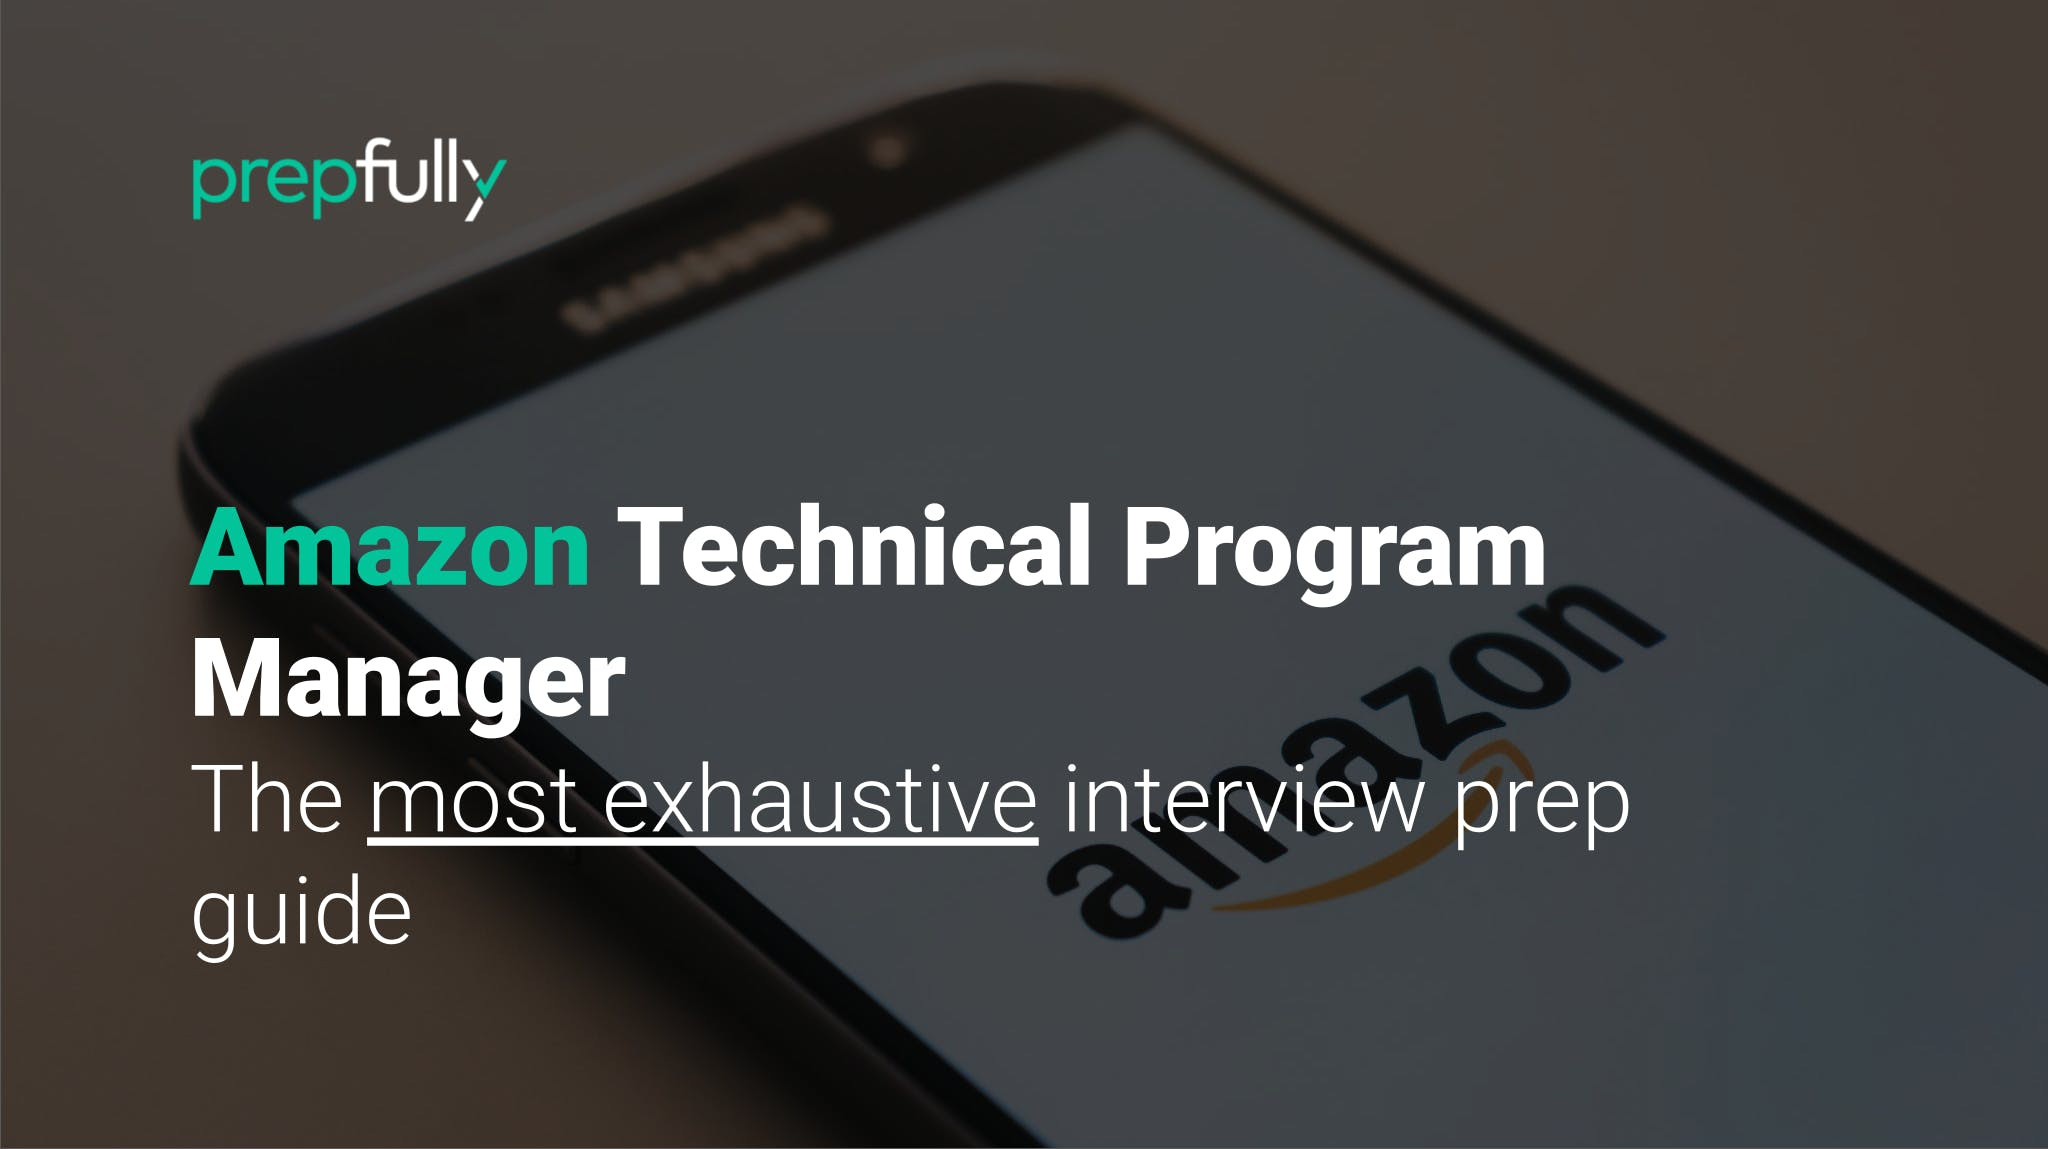 Interview guide for Amazon Technical Program Manager